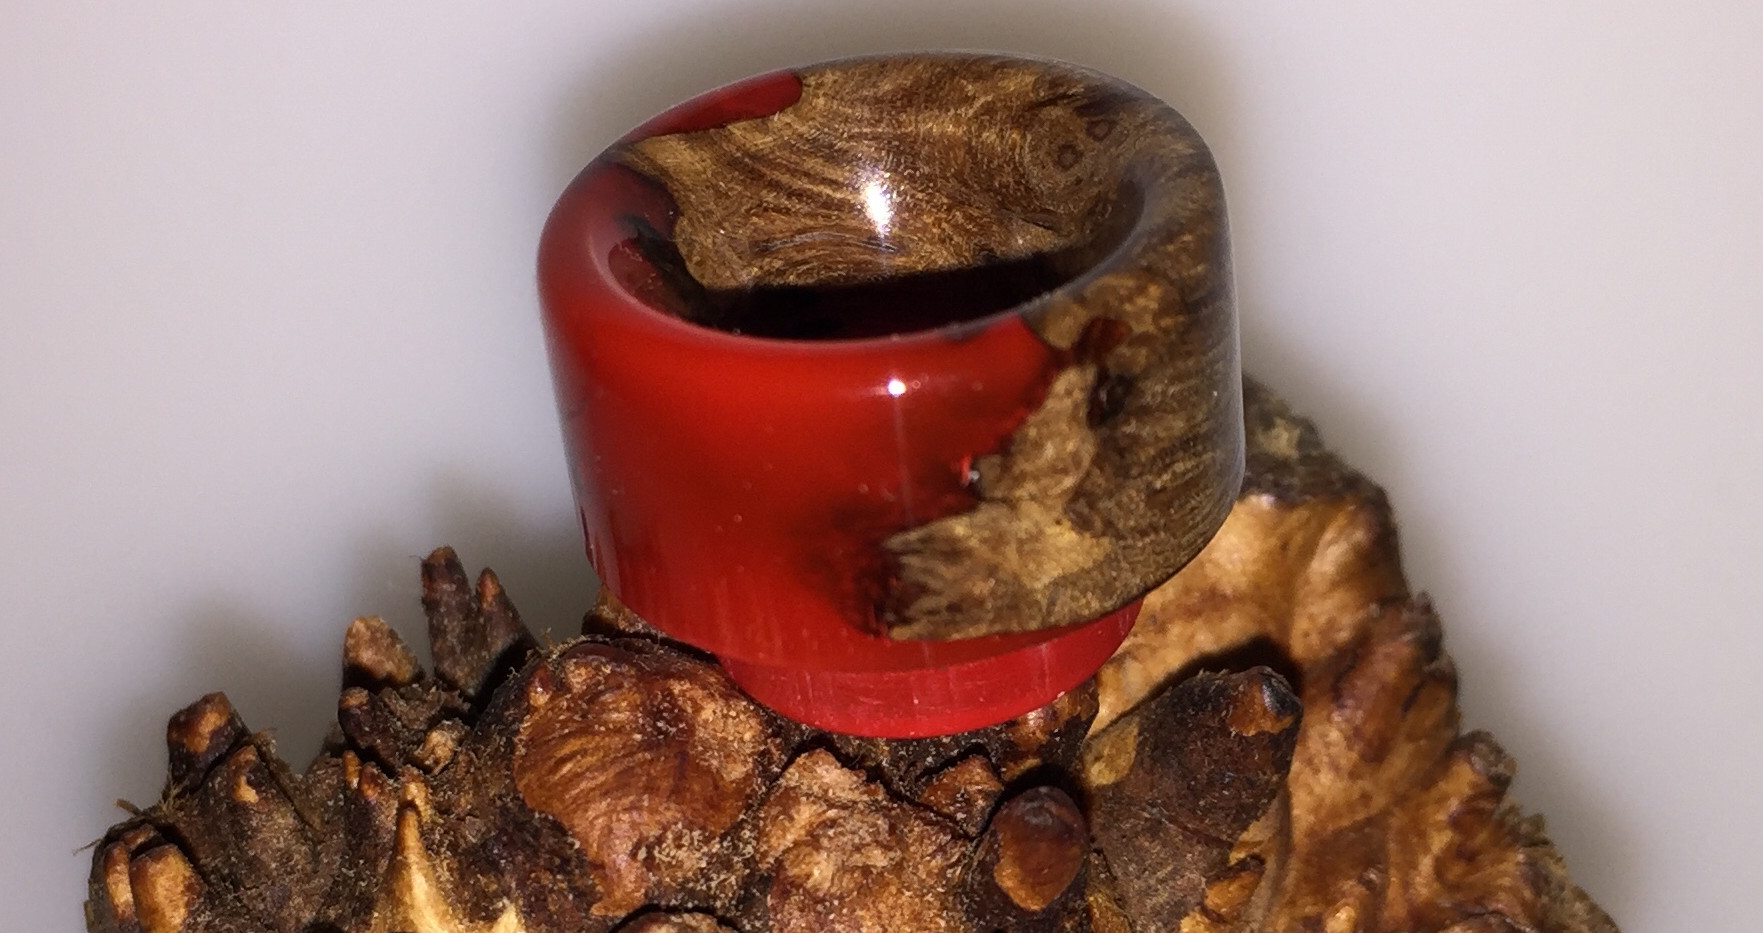 Stabilised wood and red resin